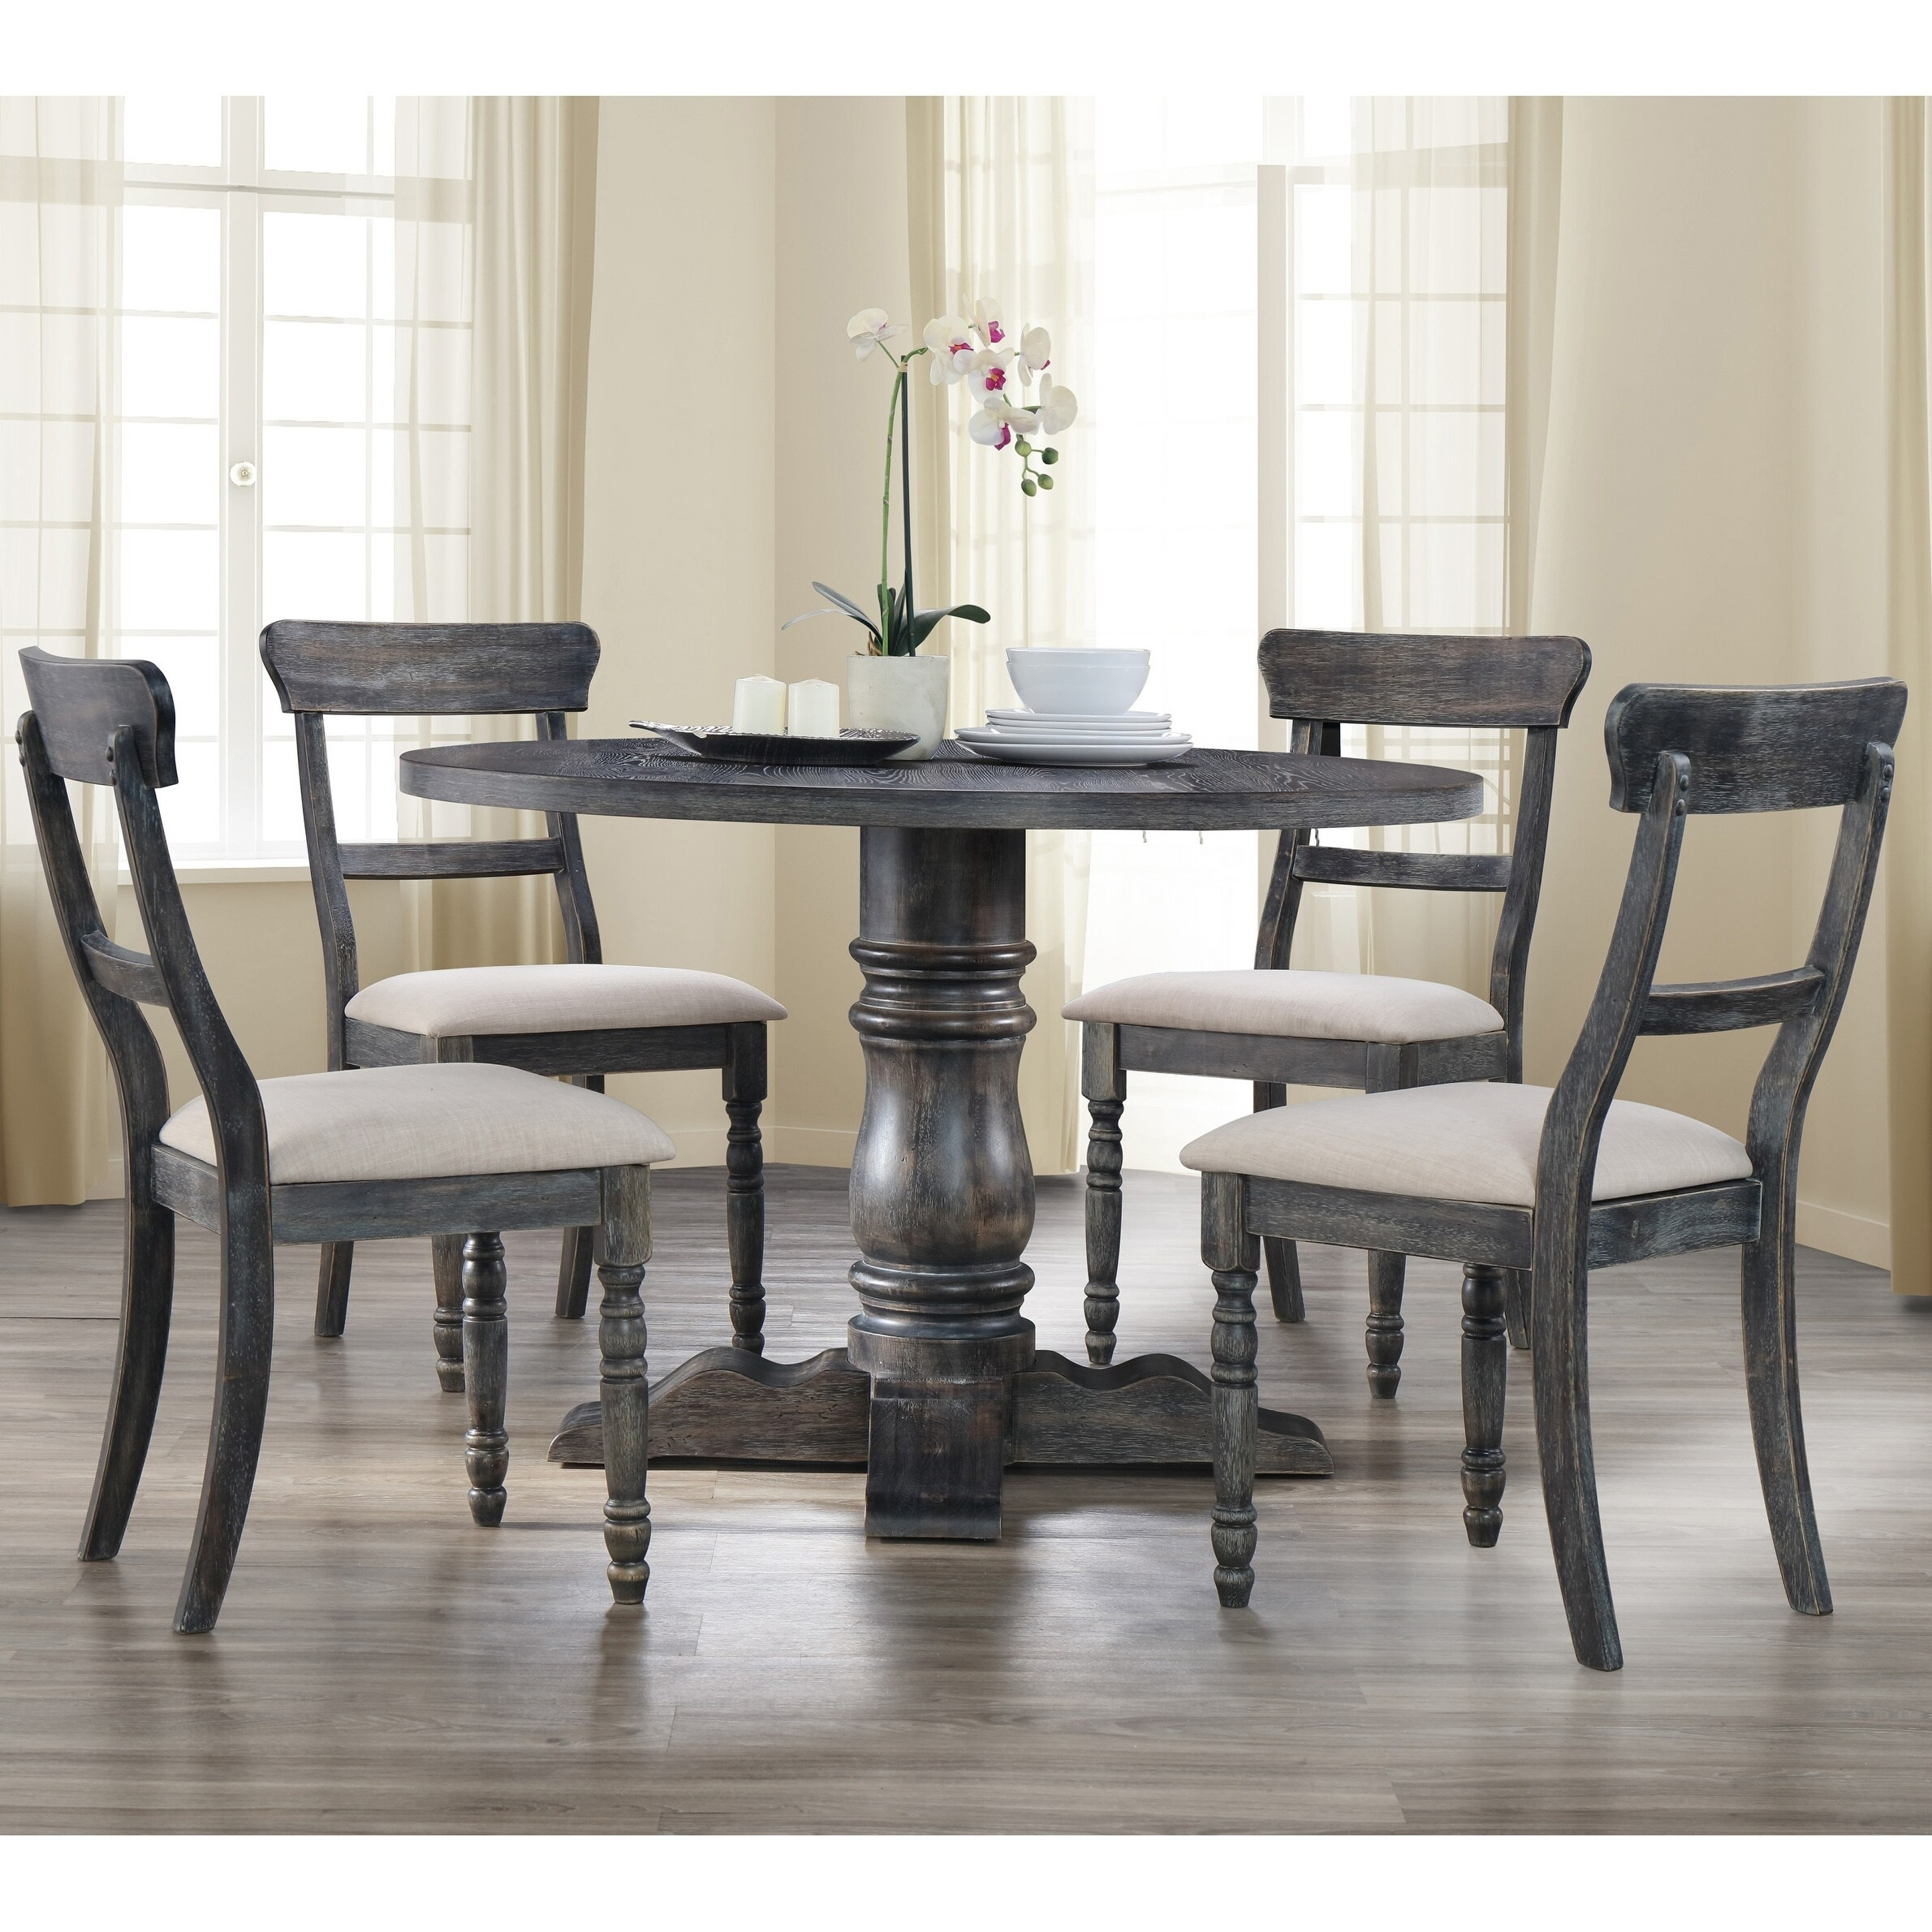 Shop For Best Master Furniture Weathered Grey 5 Piece Dinette Set Get Free Delivery On Everything At Overstock Your Online Furniture Shop Get 5 In Rewards With Club O 20012330